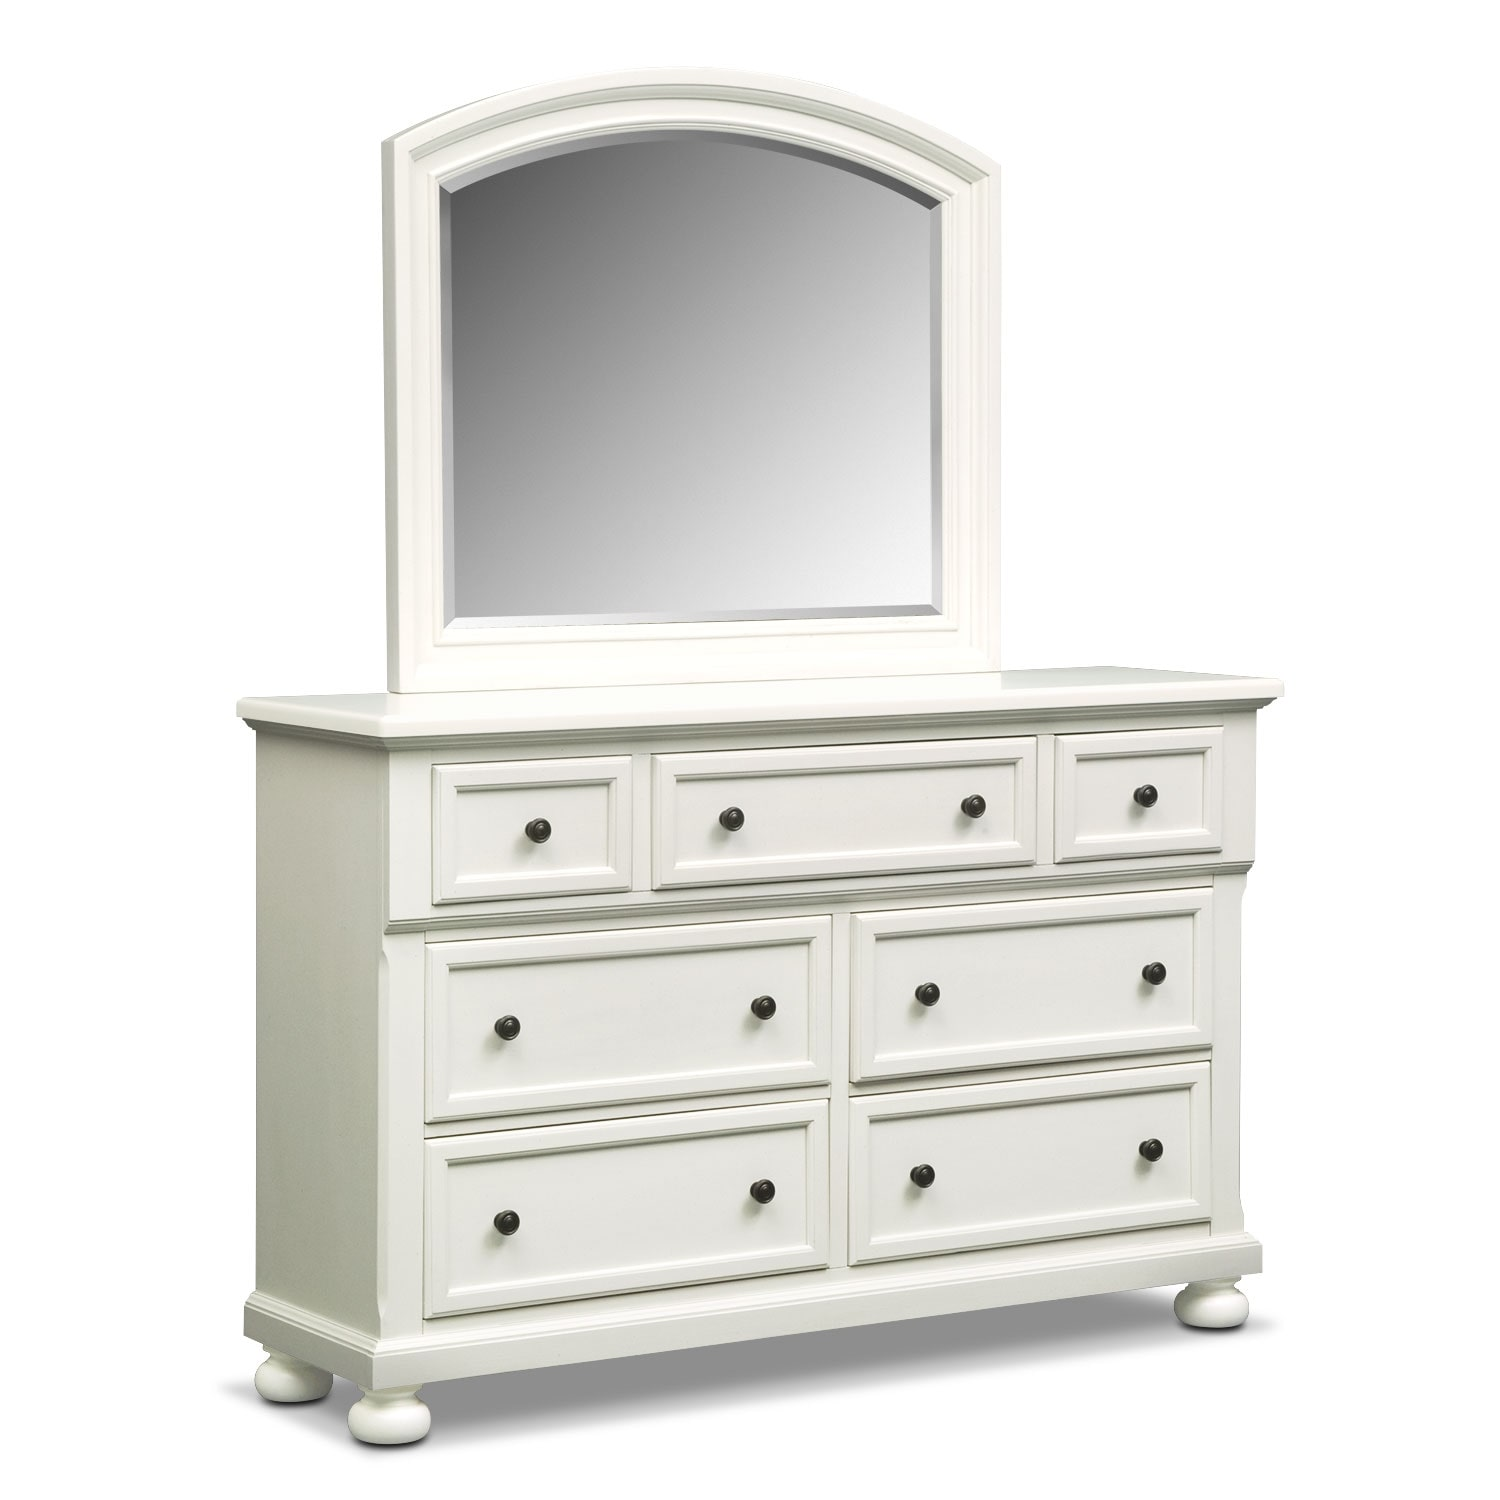 Hanover Dresser and Mirror - White